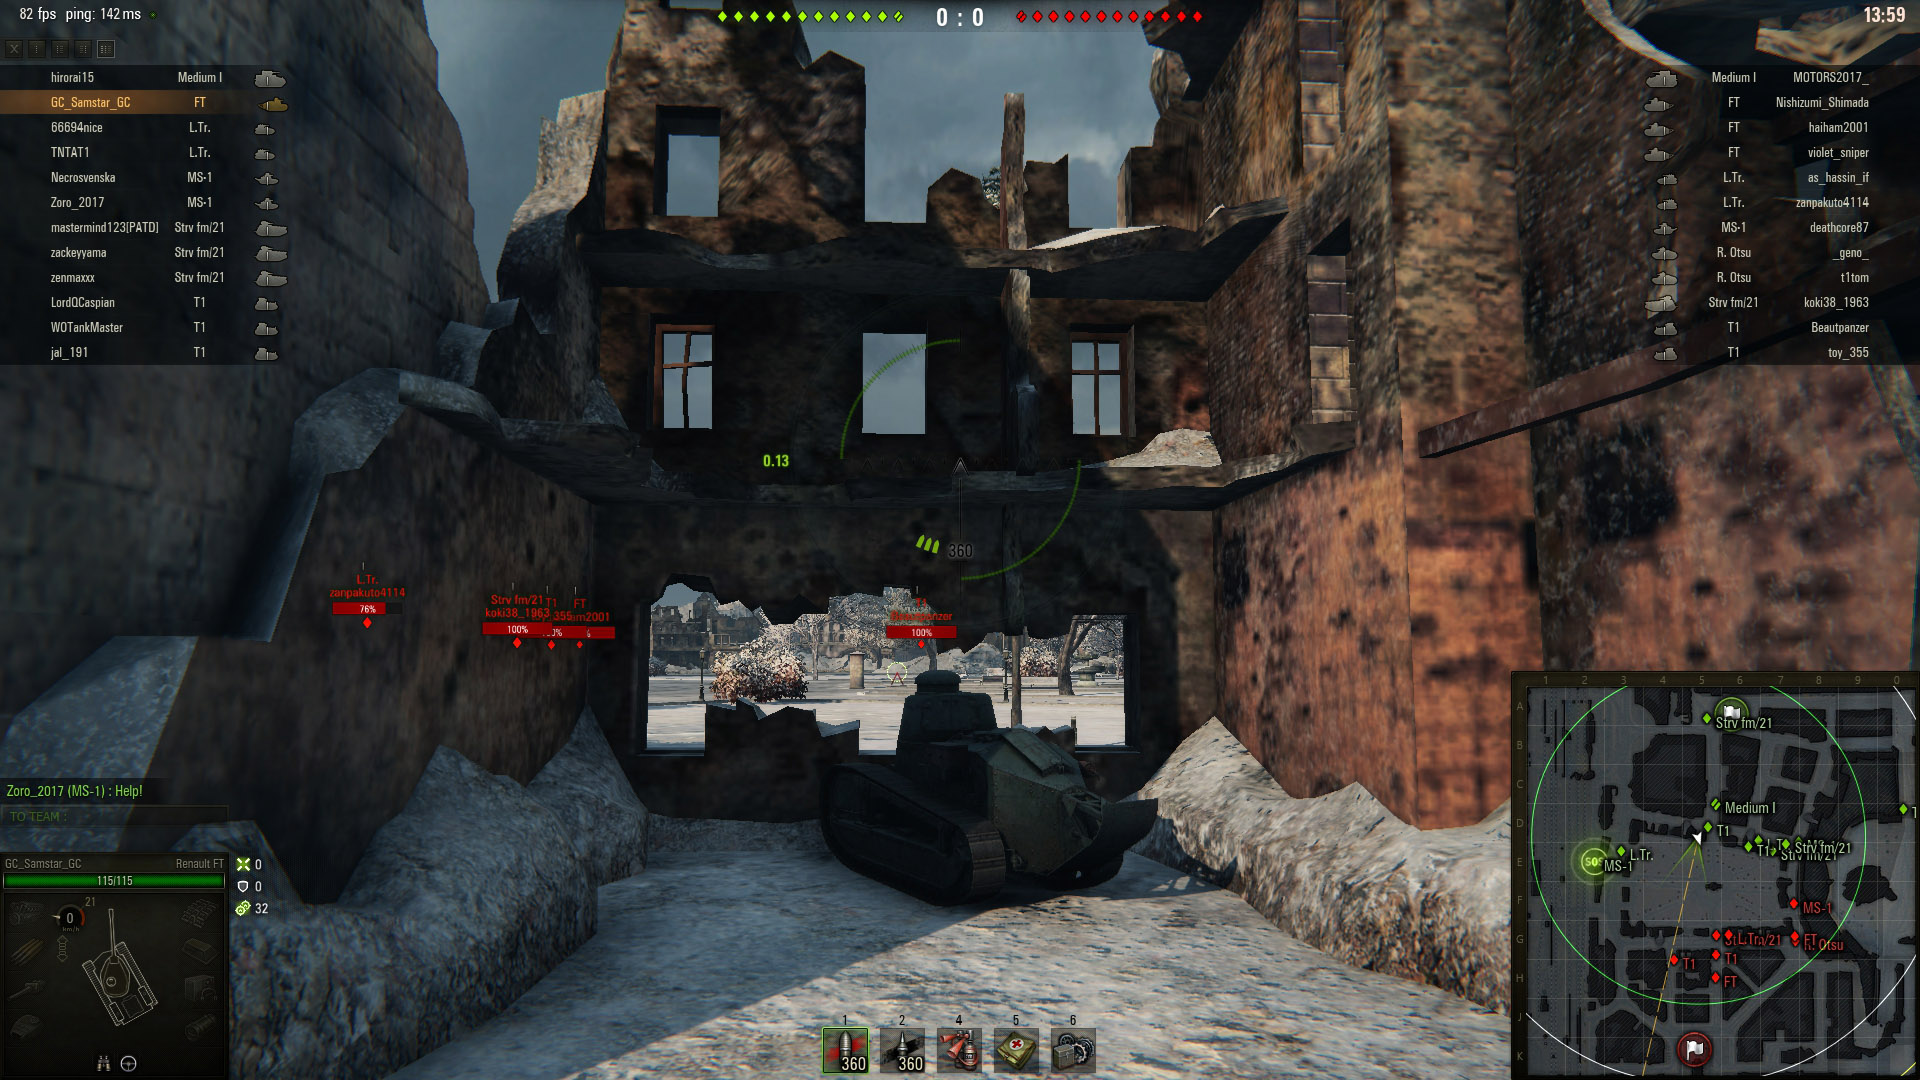 The Renault FT has a small hull and a rounded turret so it's a good idea to take advantage of this by trying to ensure only the turret is exposed.